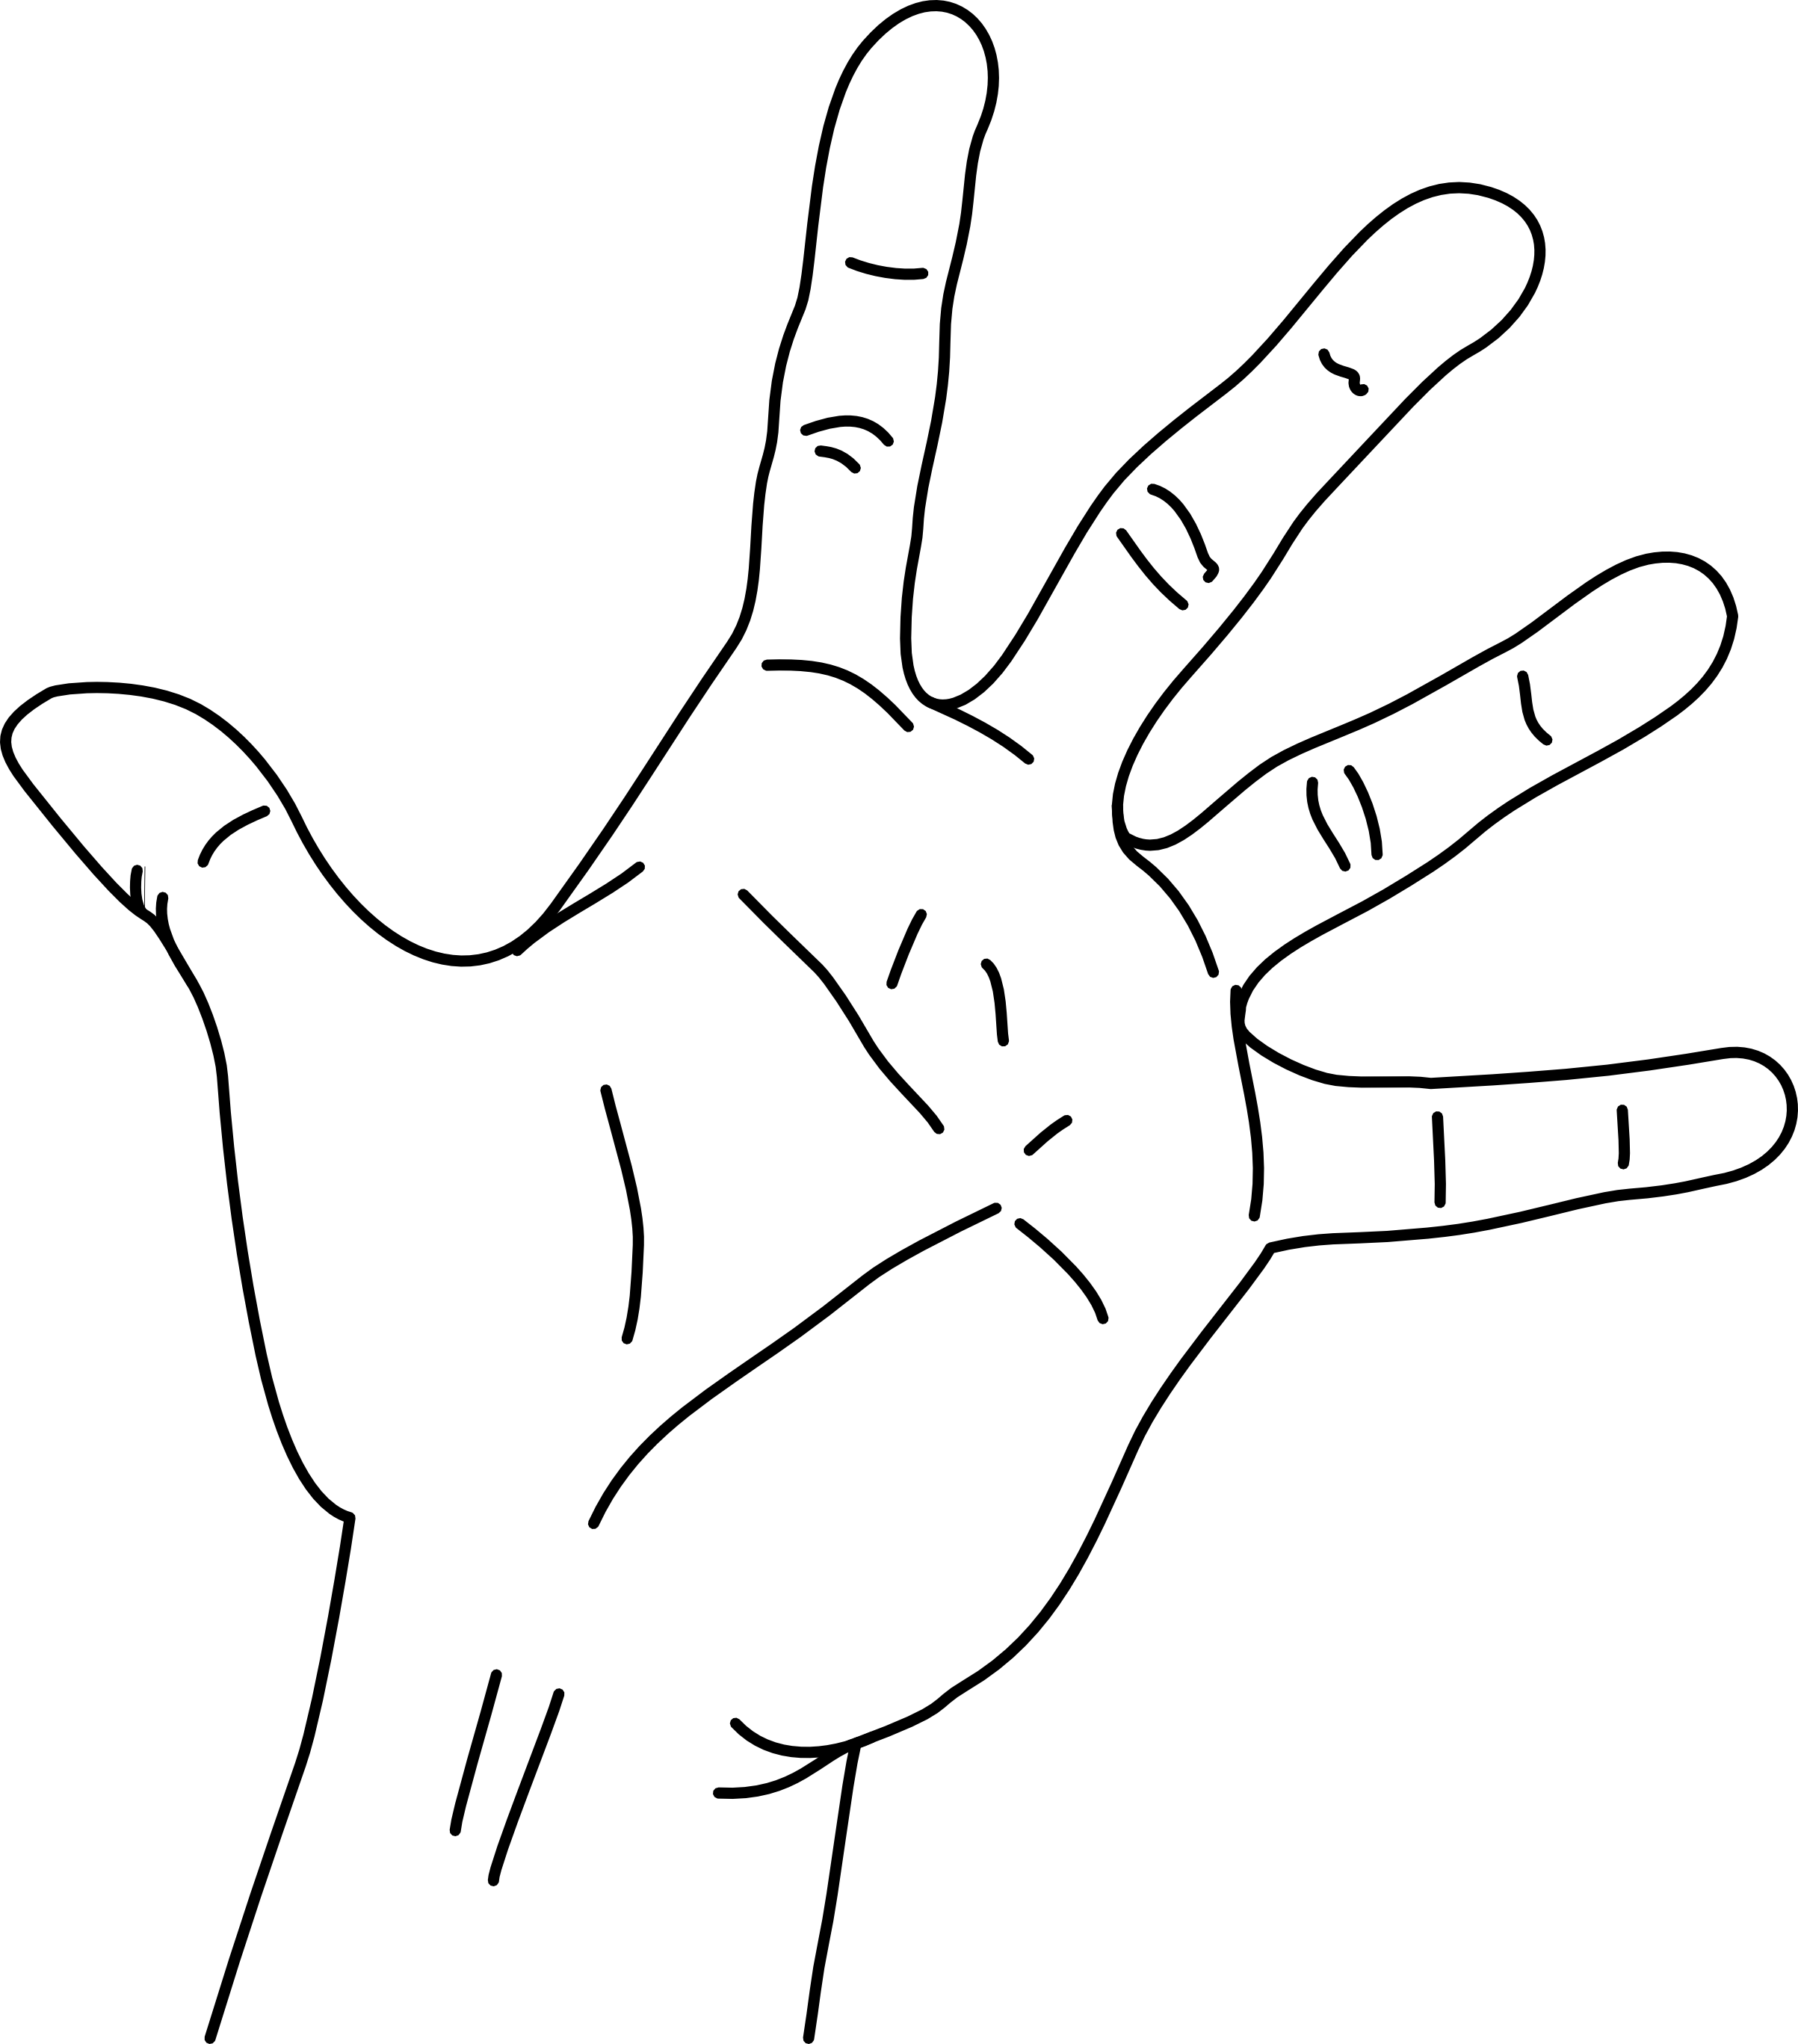 Black and white hands png. File measurements of the